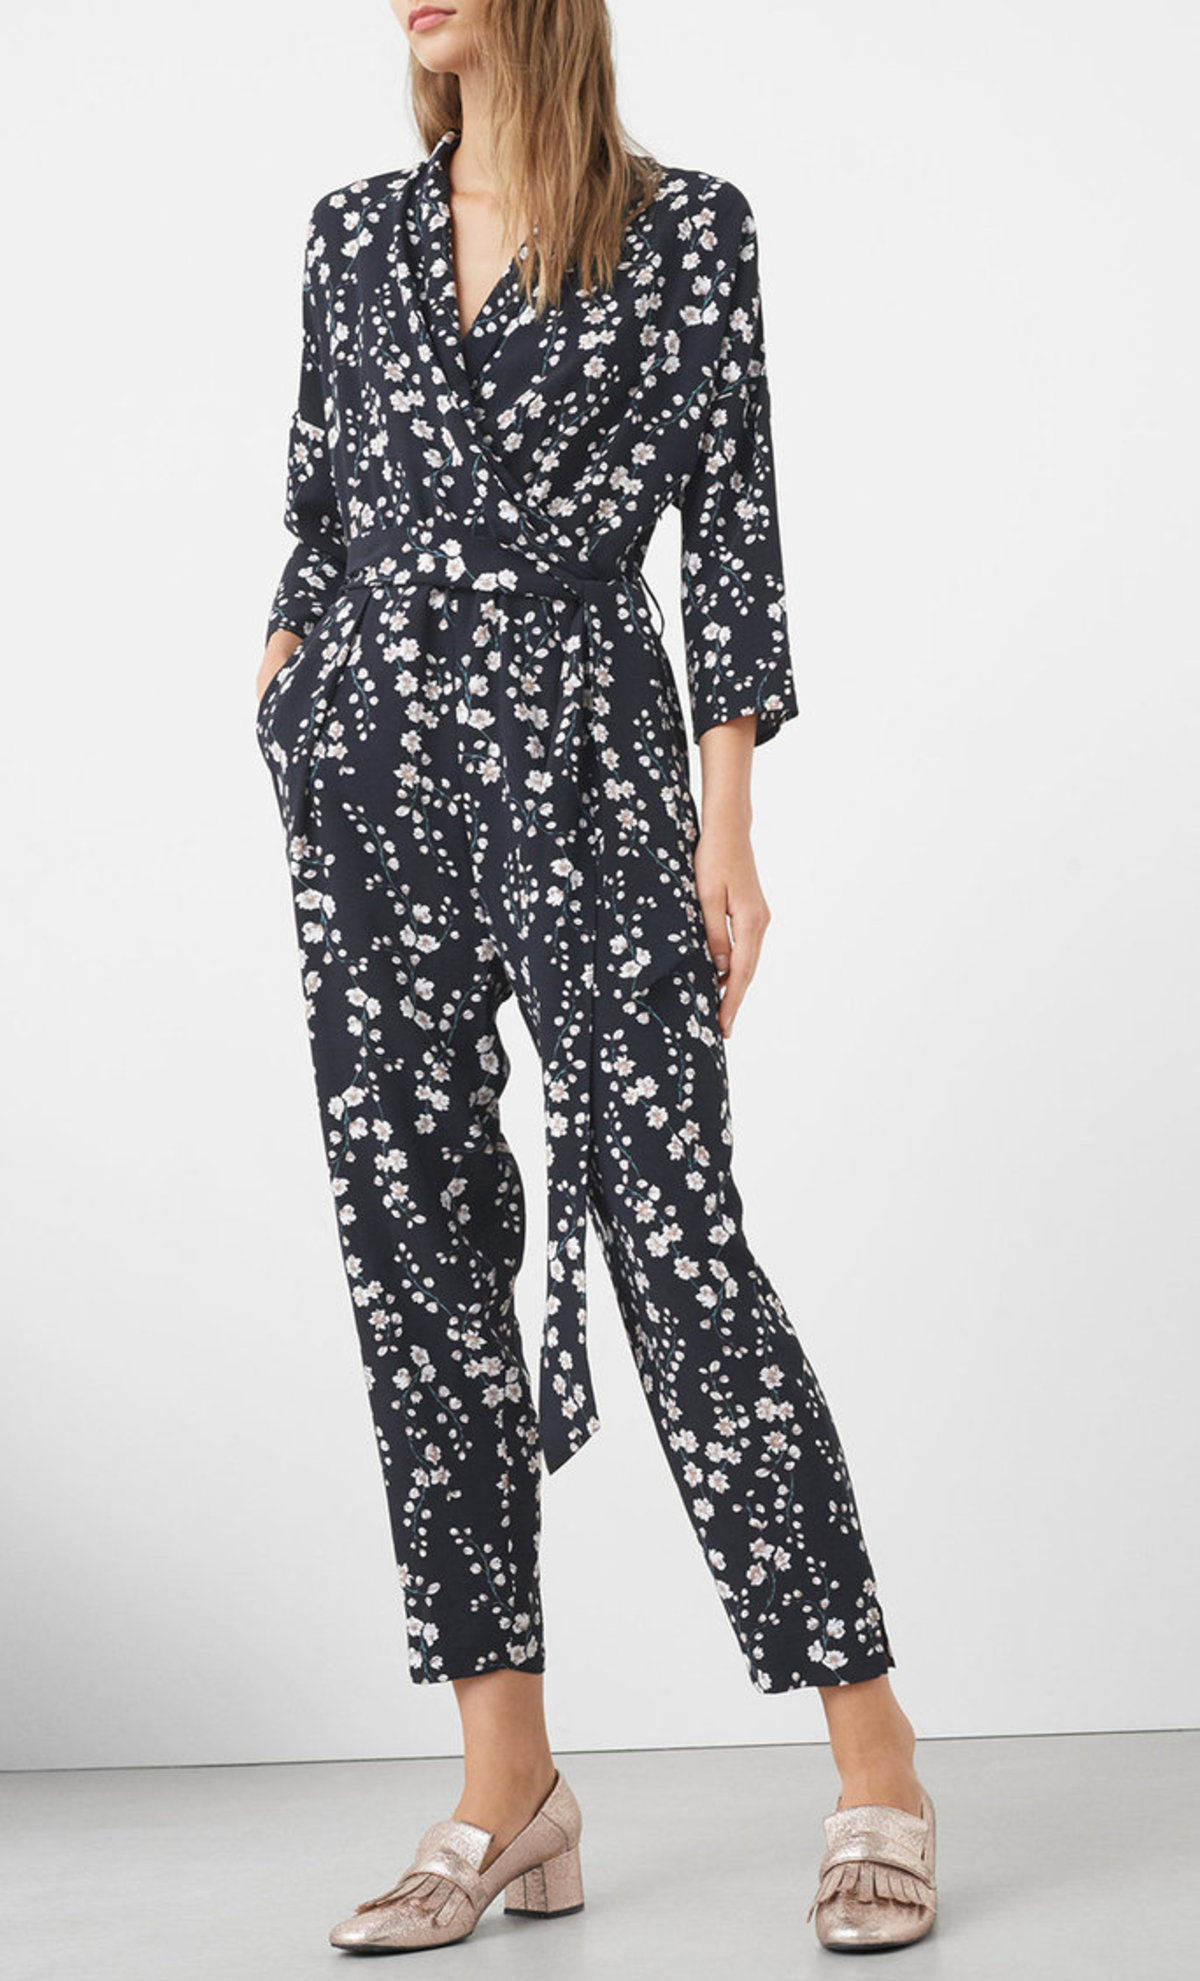 121516-jumpsuits-for-women-1